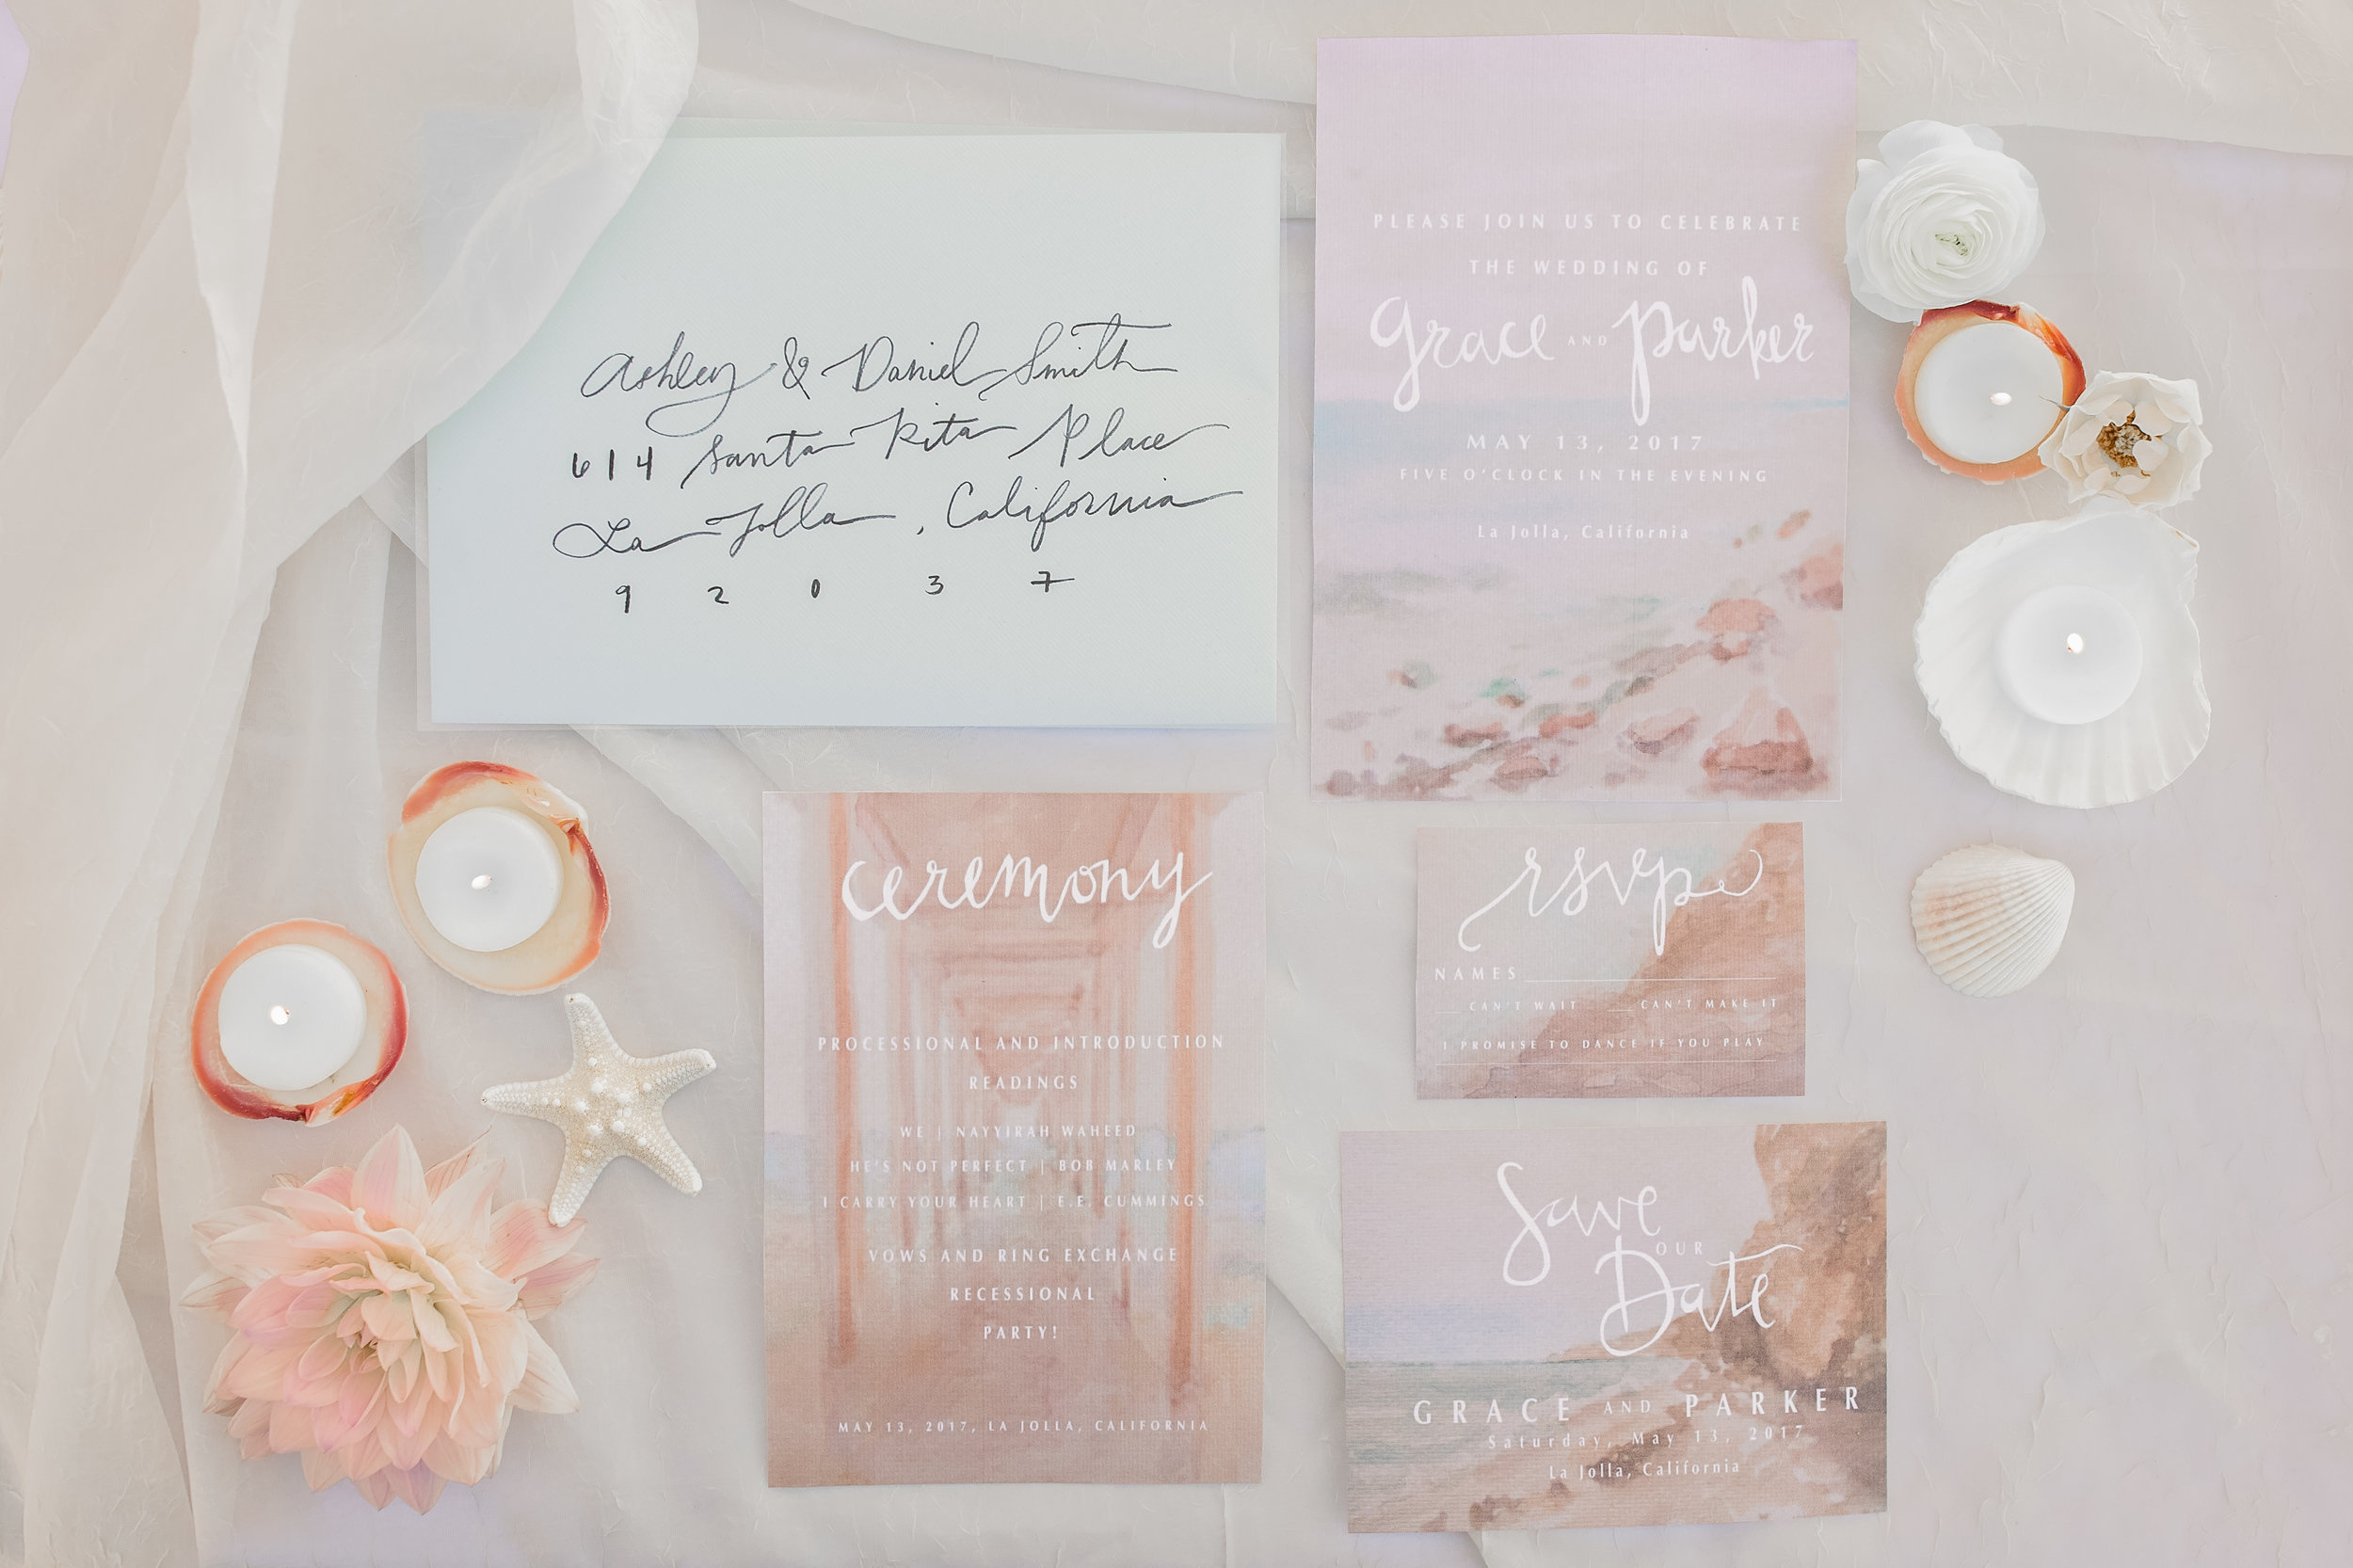 Beach-side California Watercolor Wedding Invitation Suite, 2017. Photo by  Fixated Concepts .